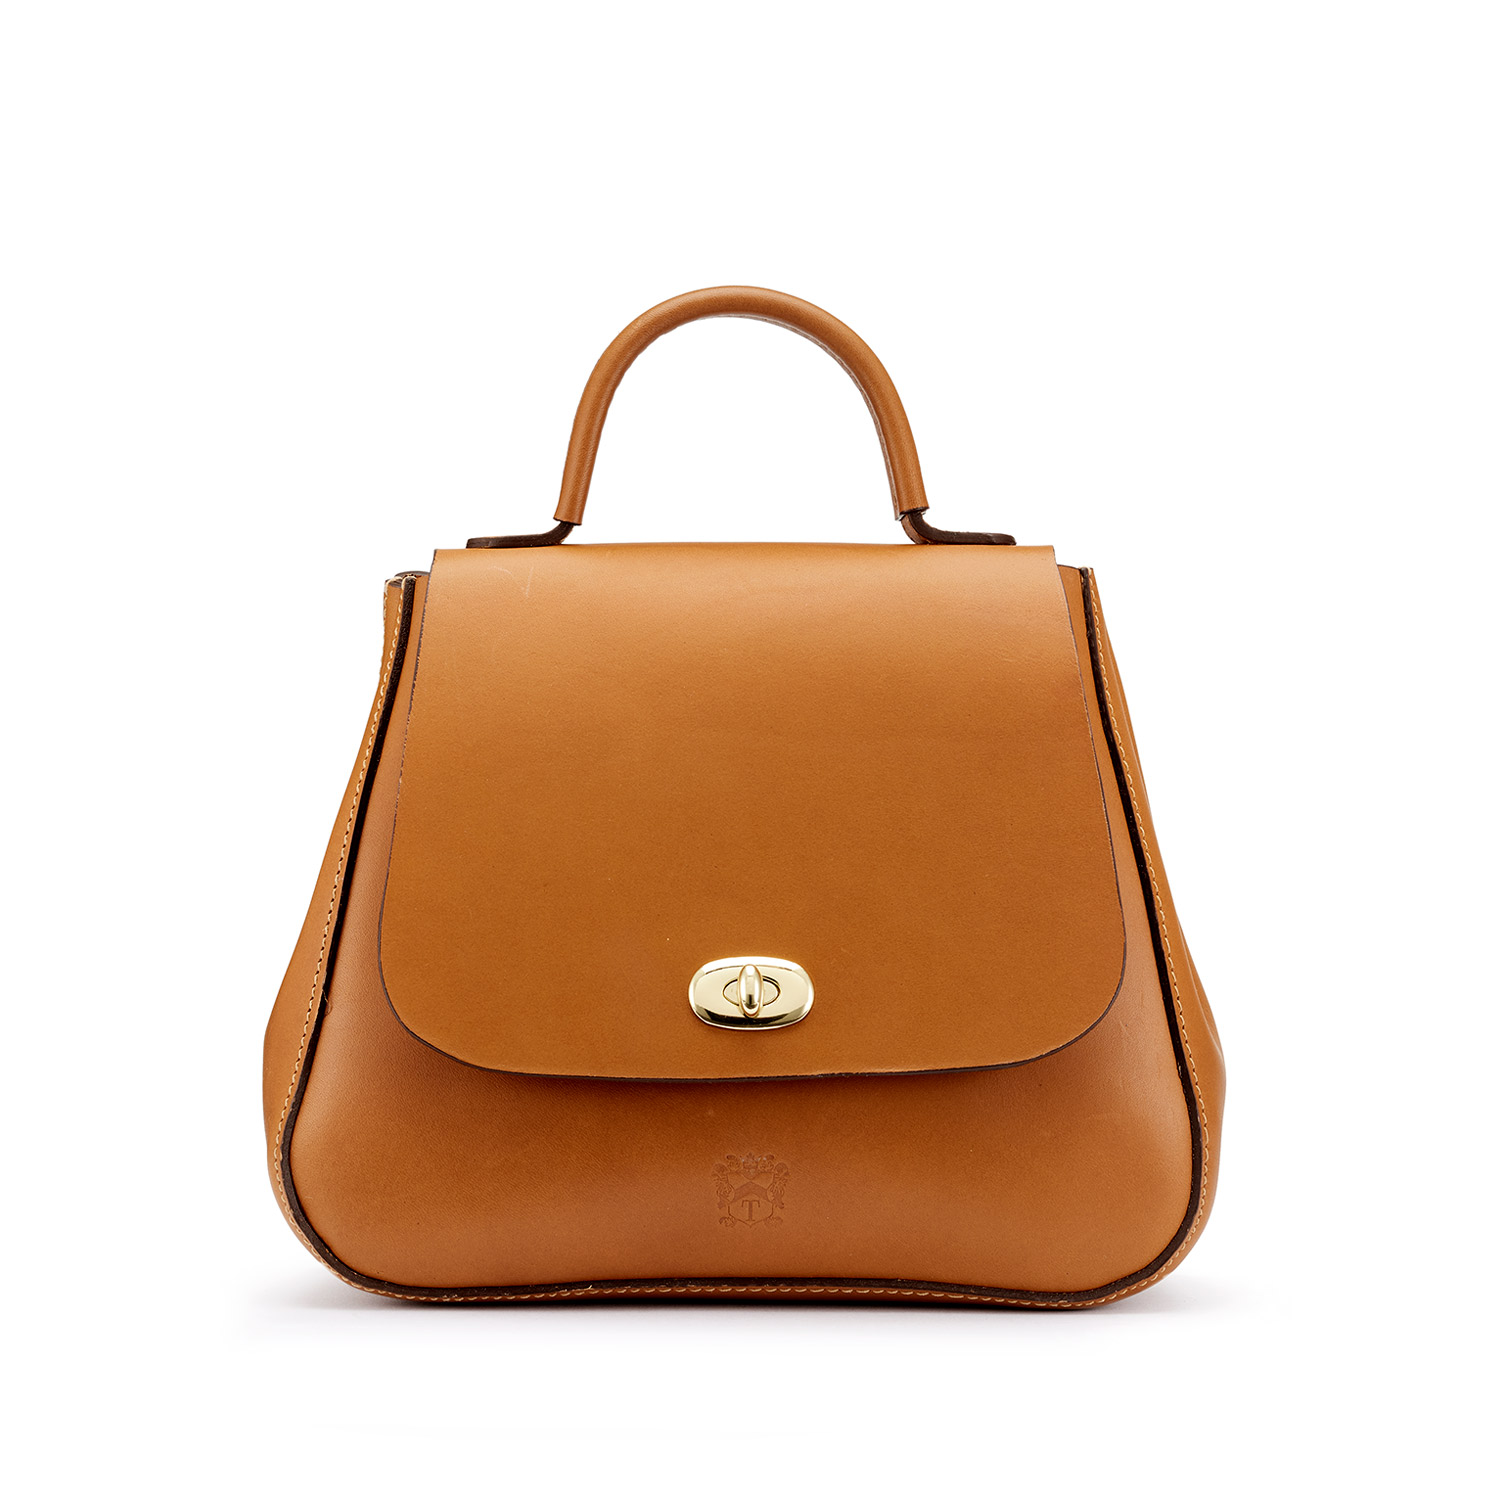 Tusting Holly Leather Top-Handled Handbag in Classic Tan